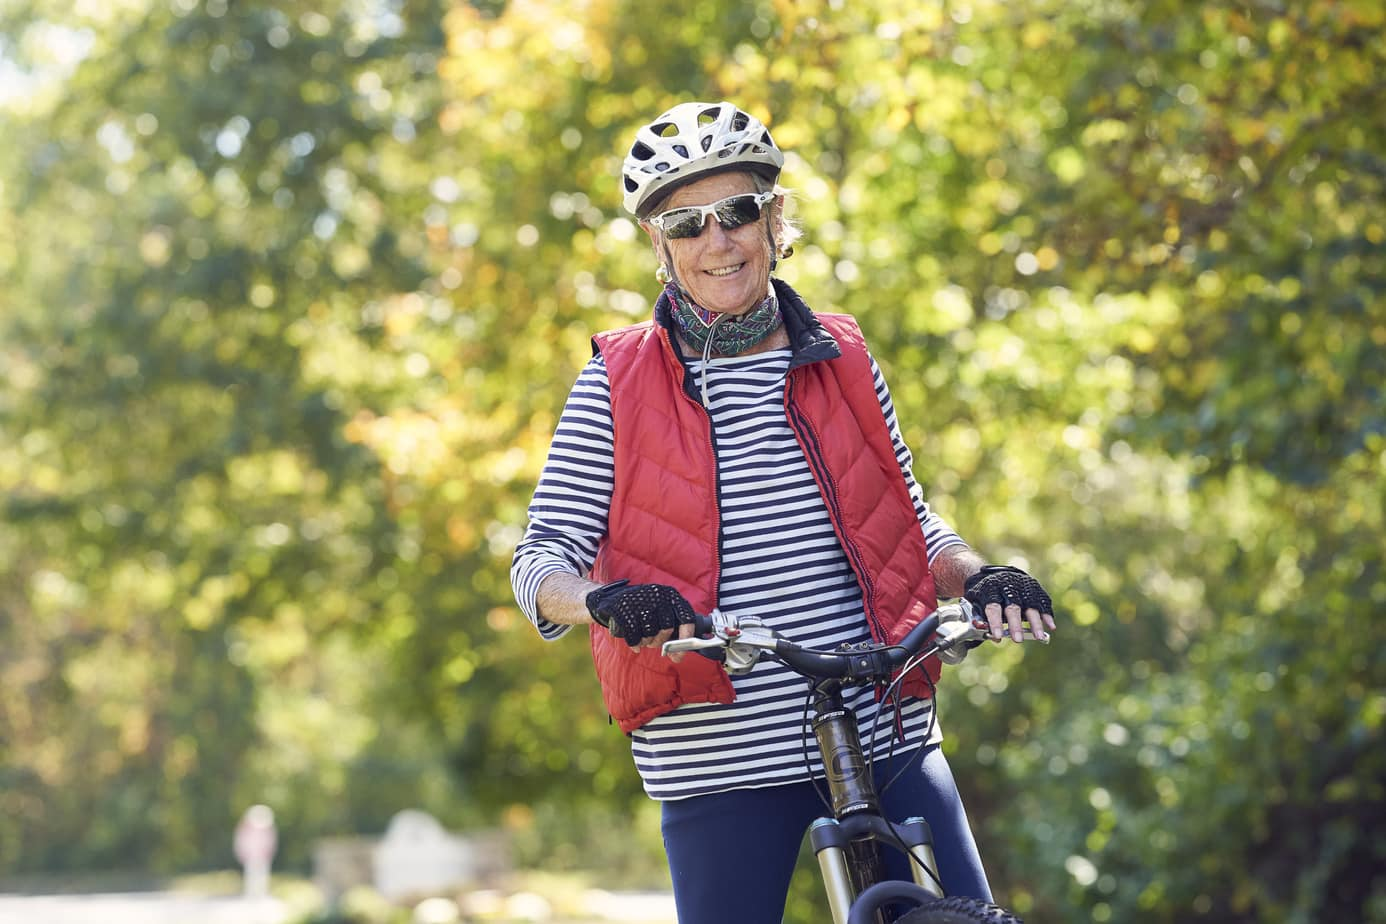 Senior Living Retirement community photography. Active senior riding bike exercising